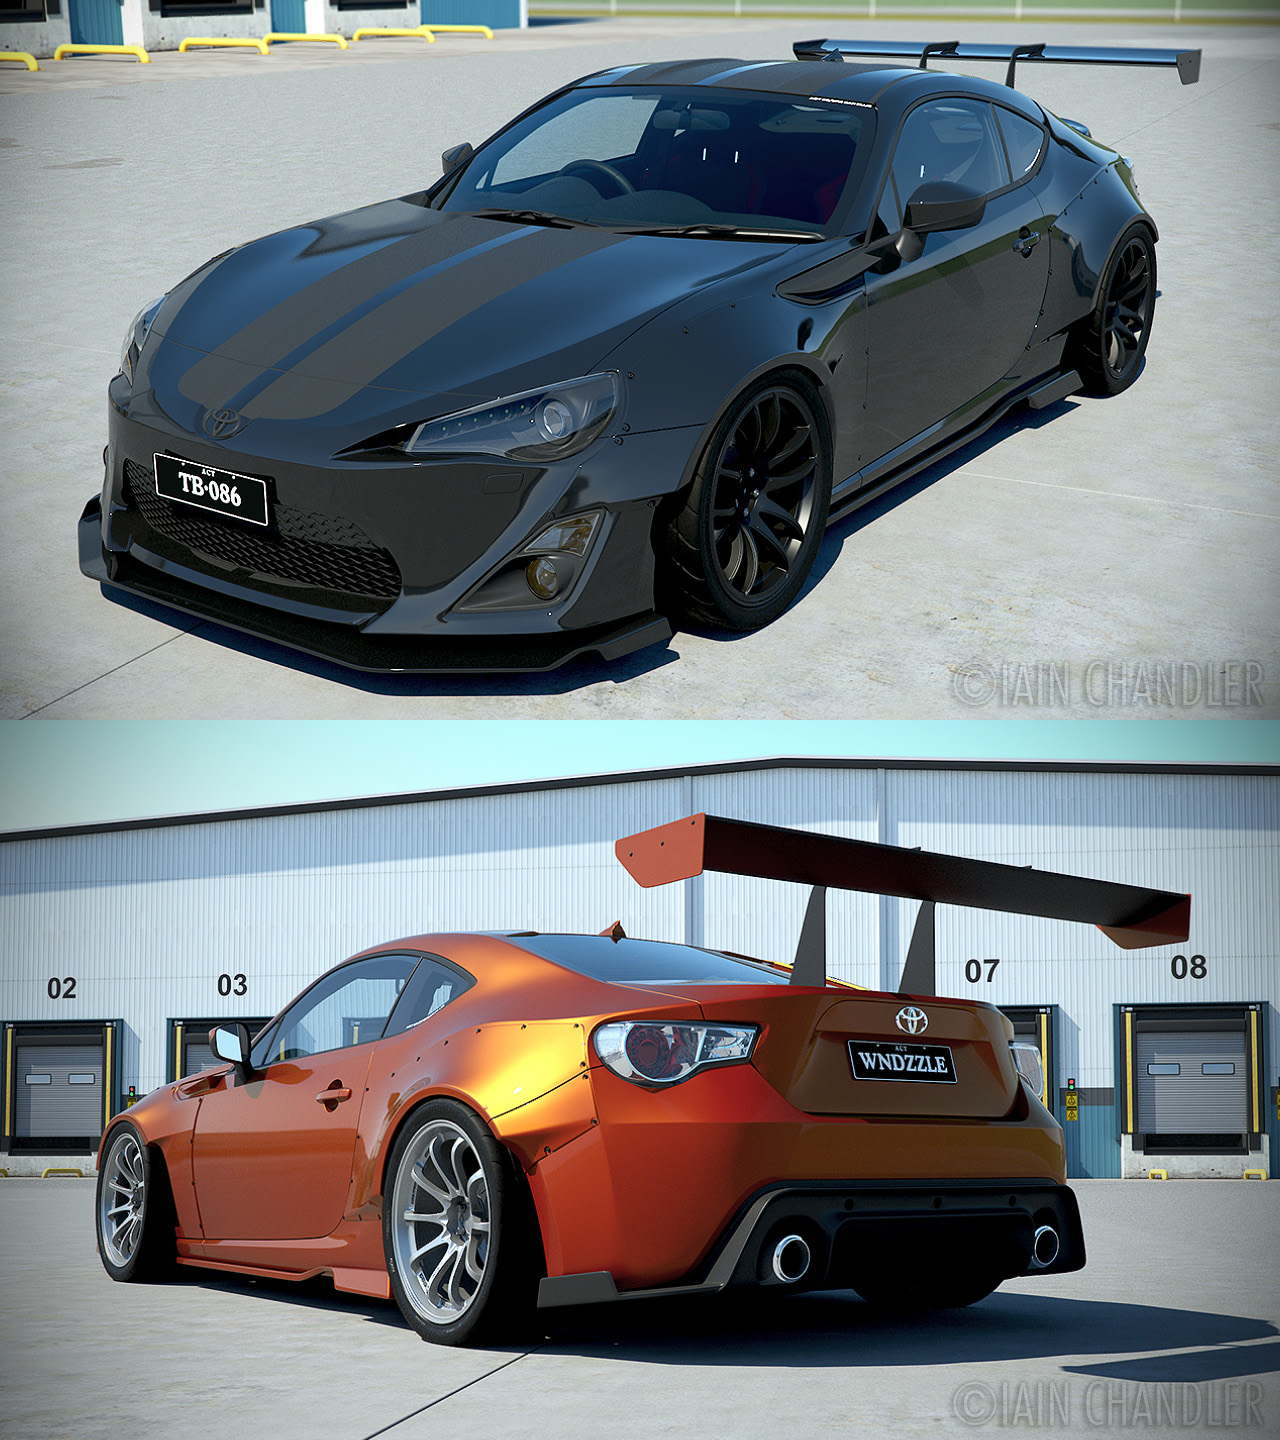 toyota gt86 wip 17 39 rocket bunny 39 by the ic on deviantart. Black Bedroom Furniture Sets. Home Design Ideas